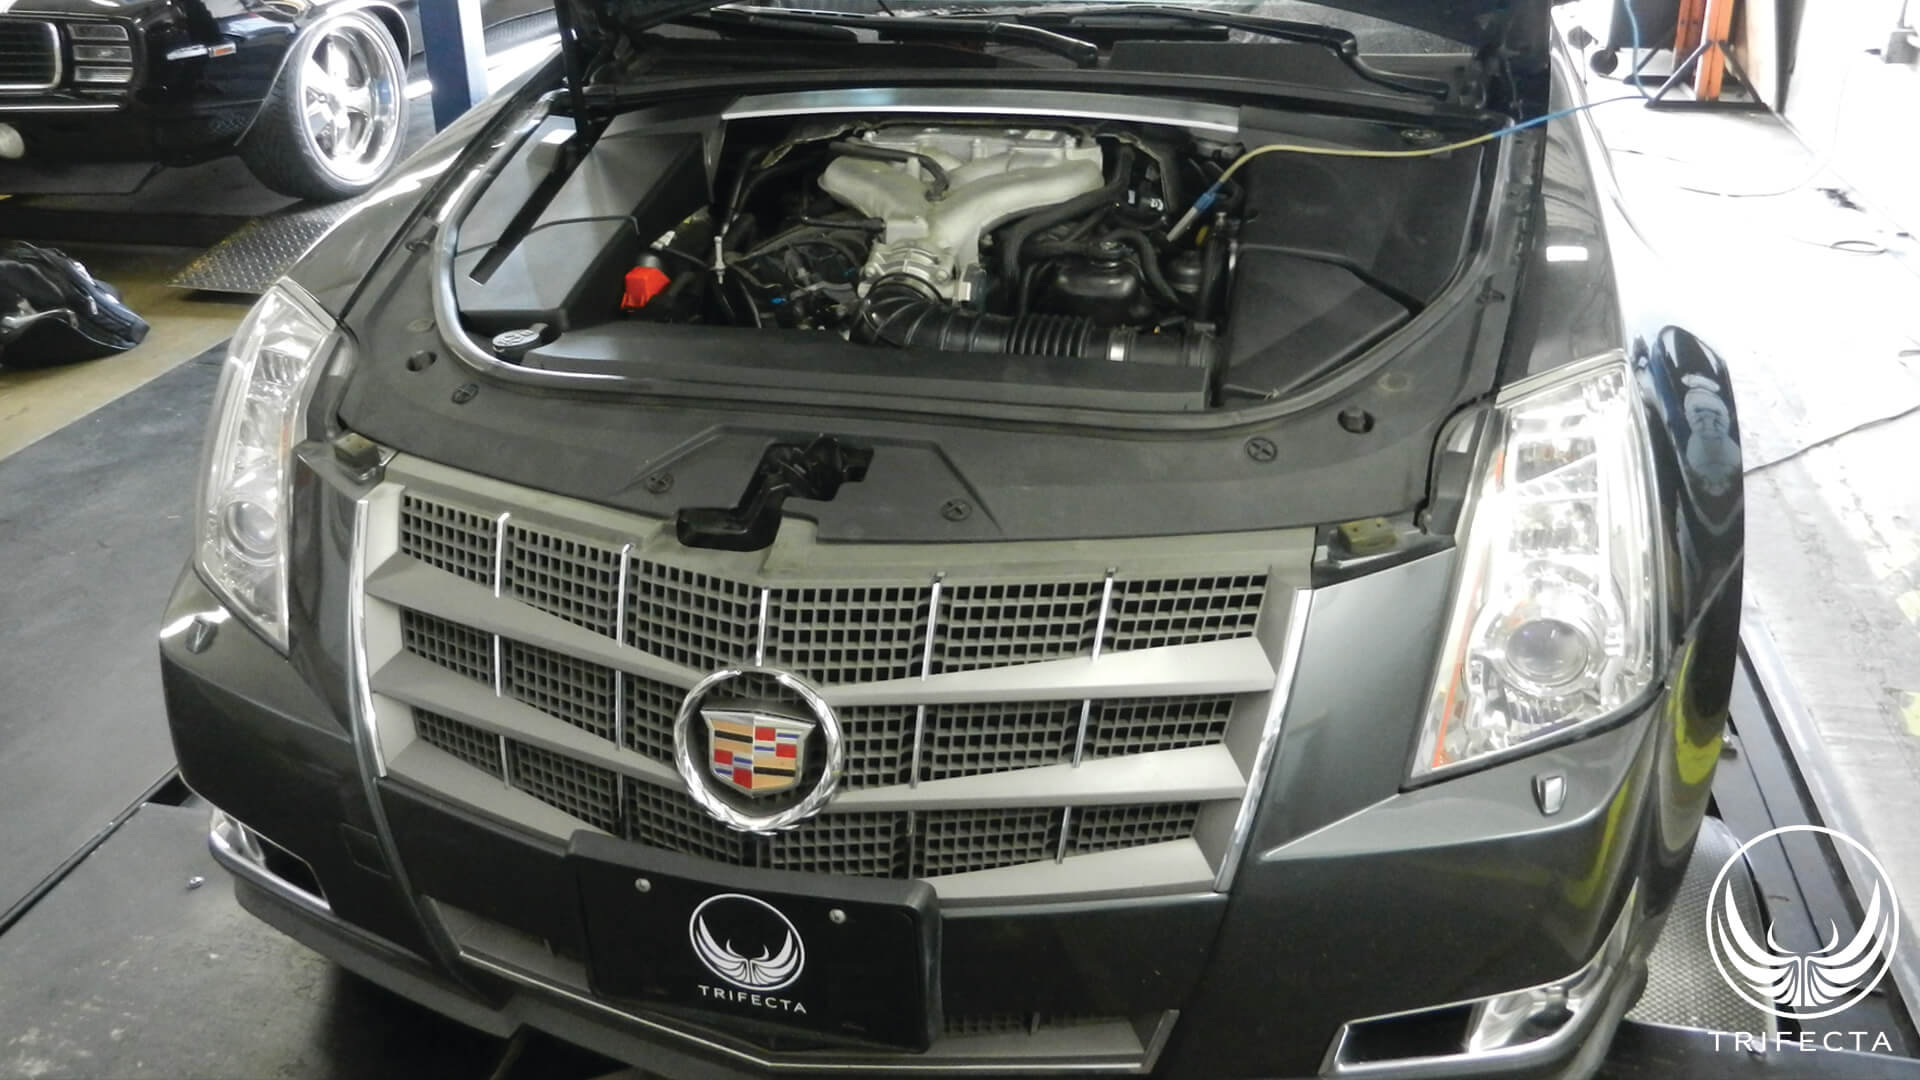 Product Review: 2008--2014 Cadillac CTS - 3.6L (2nd Generation CTS) - Advantage